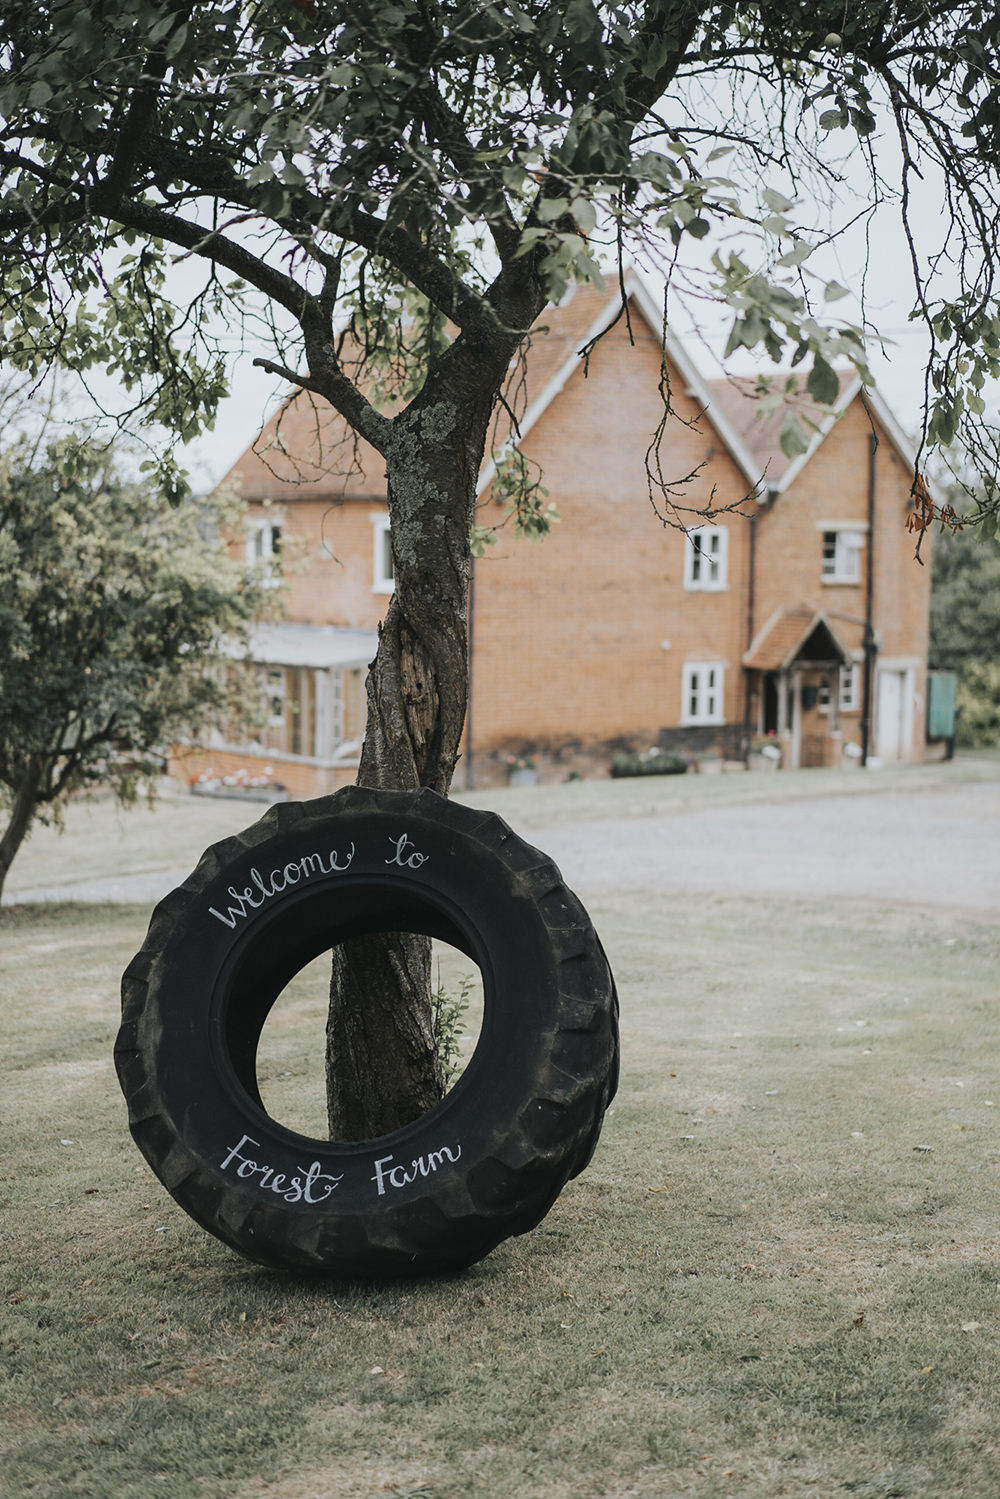 Welcome Sign Tractor Wheel Modern Calligraphy Celestial Cow Shed Wedding Tora Baker Photography